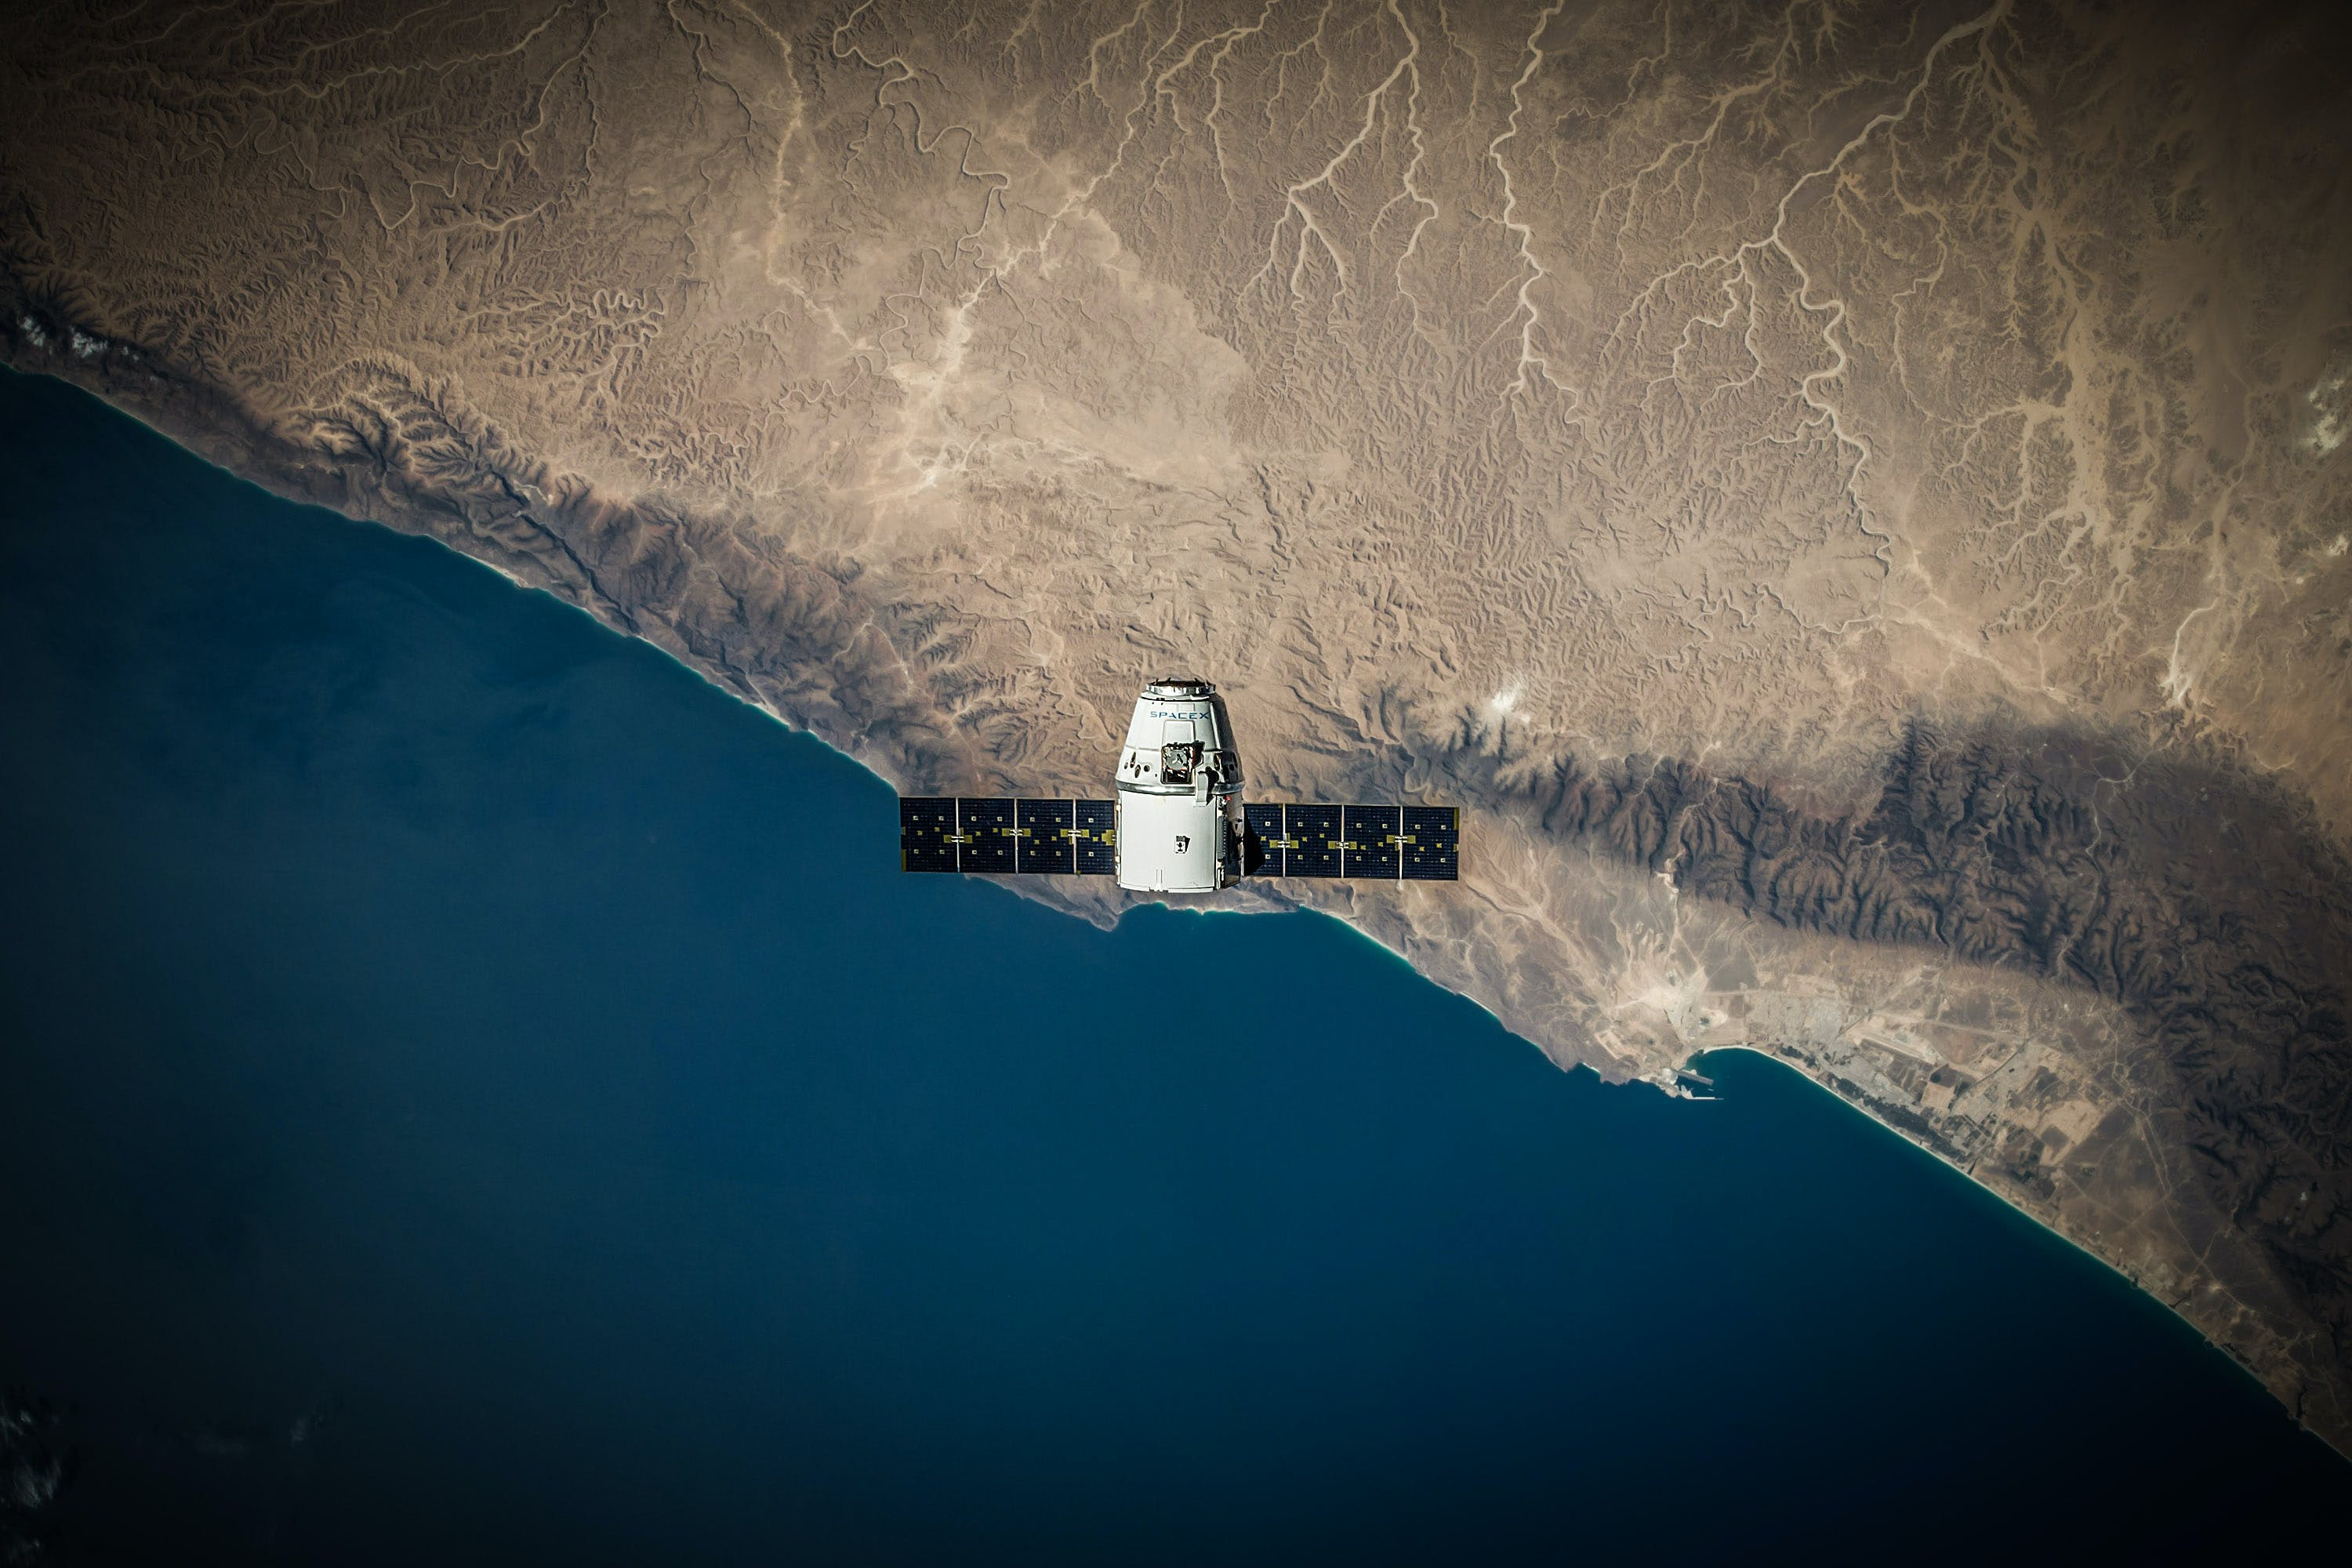 aerial view, earth, exploration